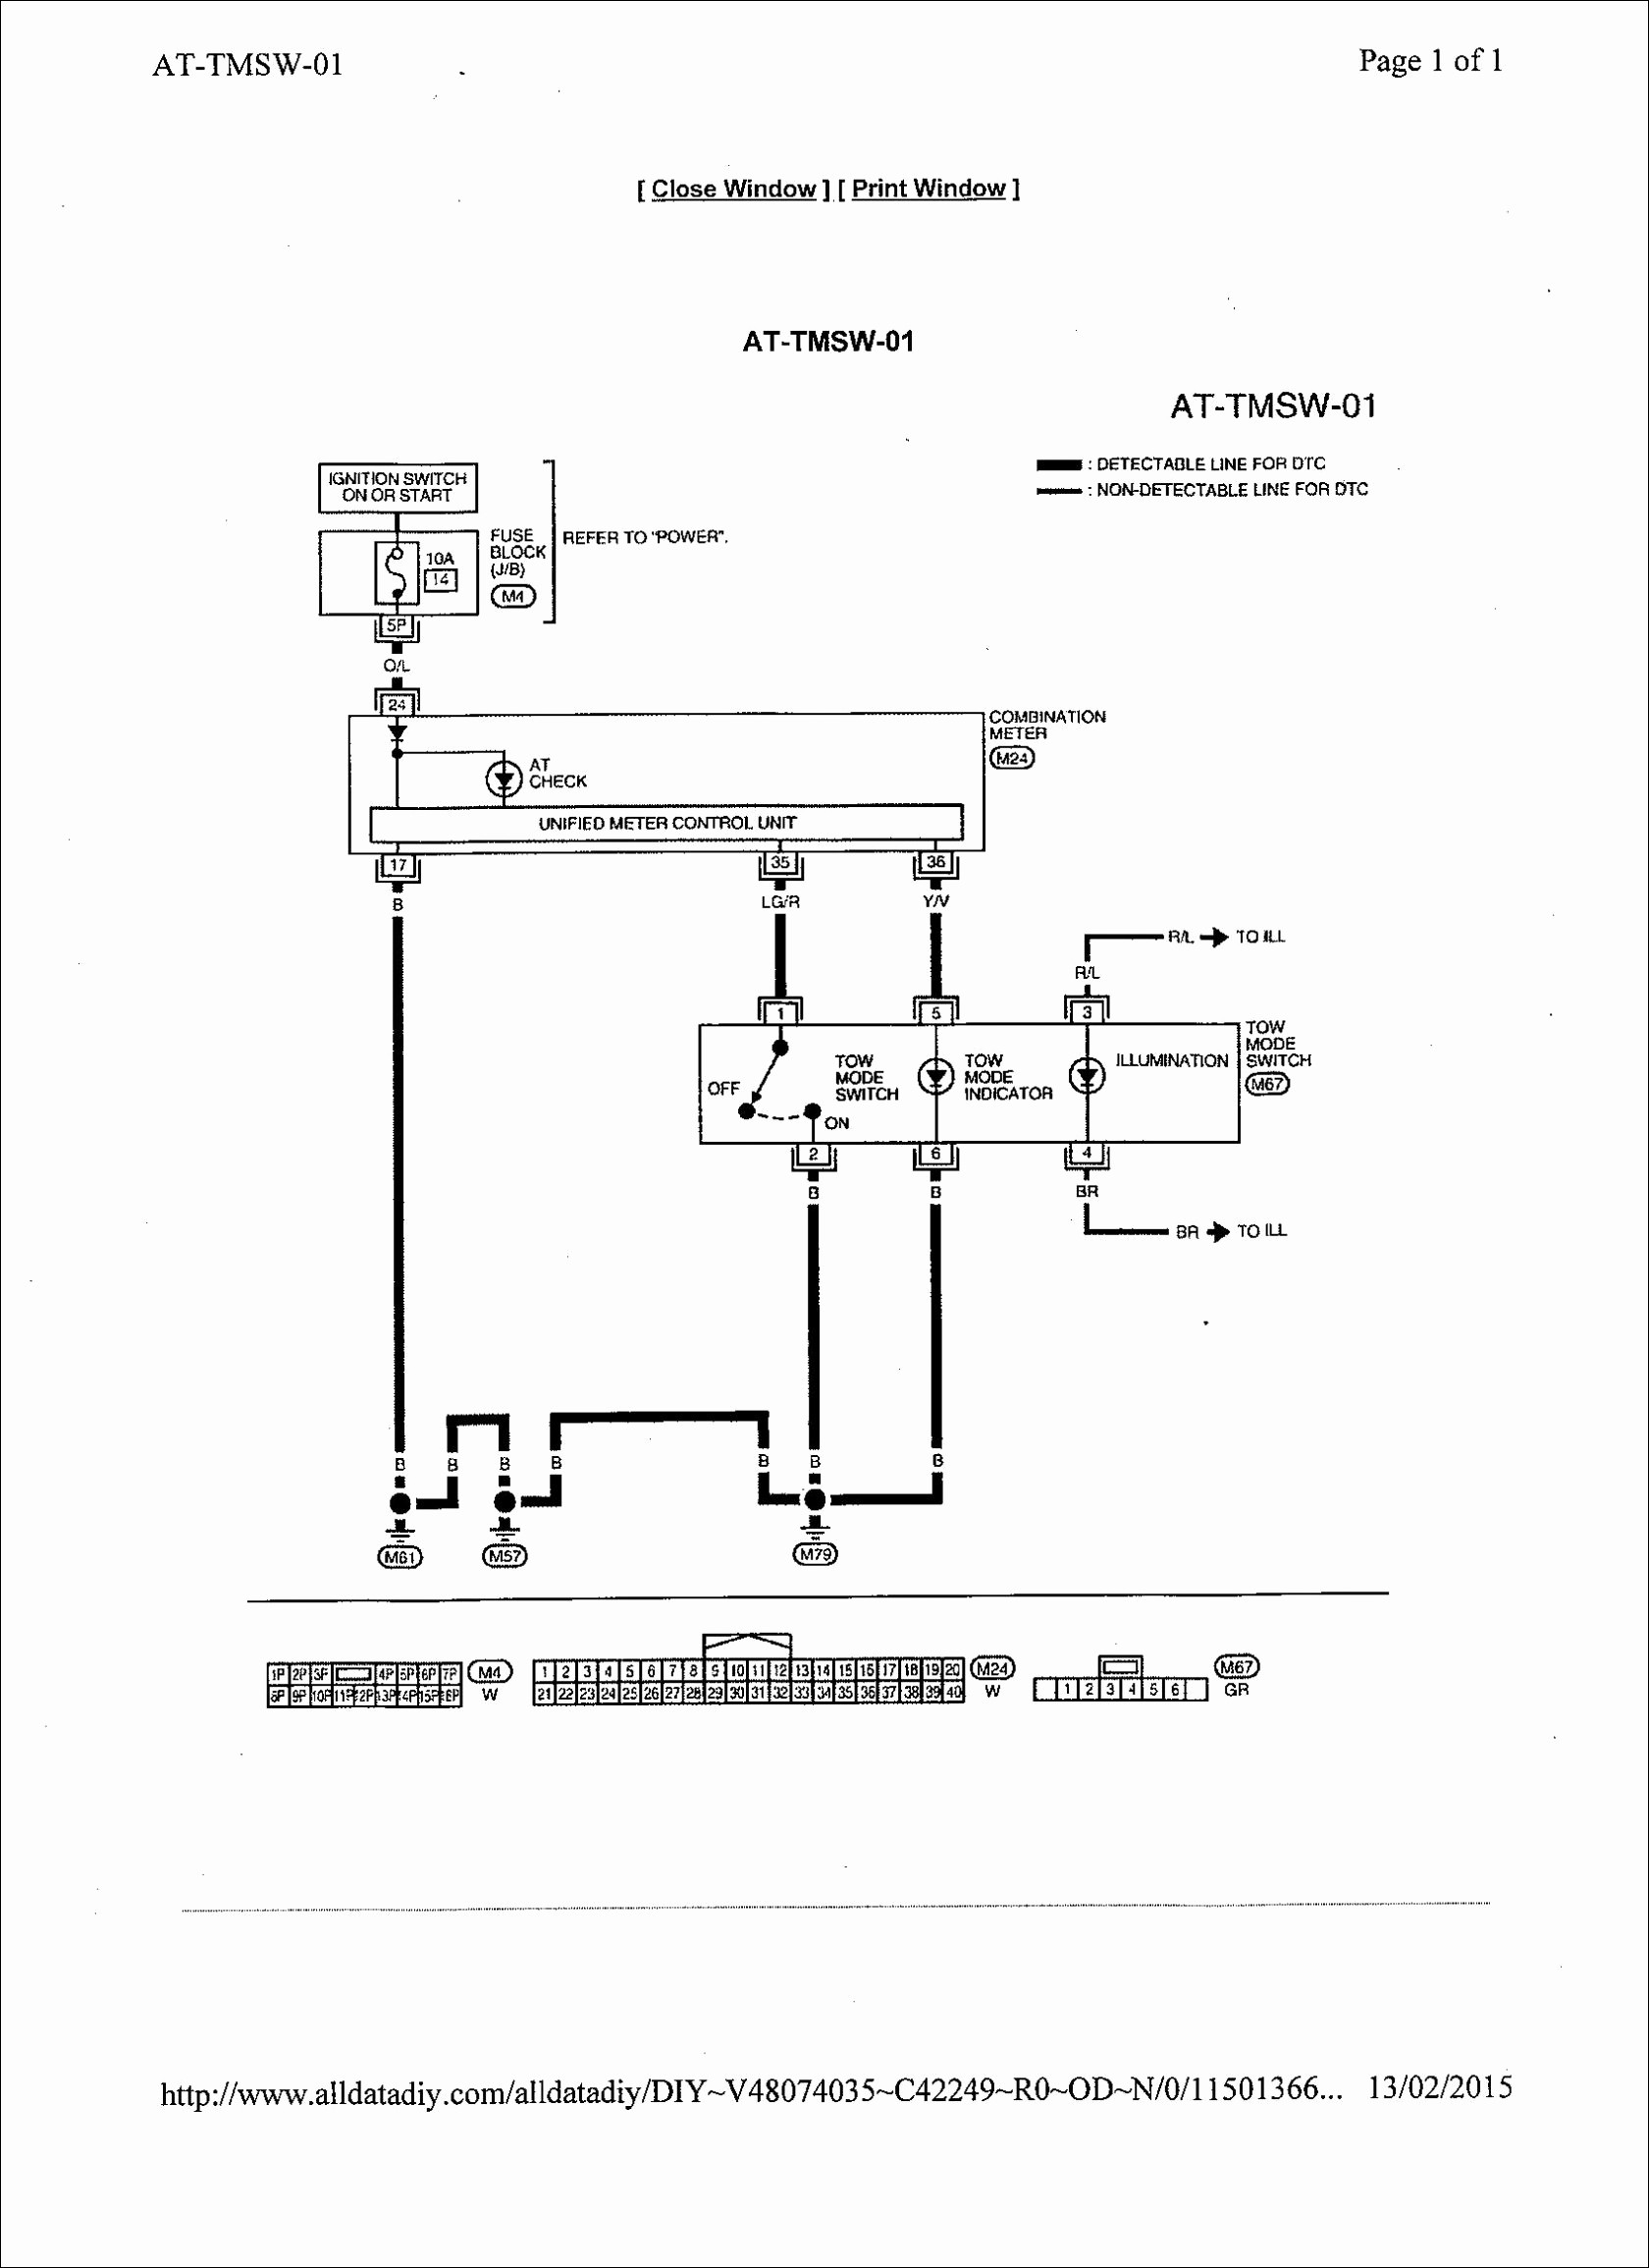 Diagram Wiring Diagram 120v Full Version Hd Quality Diagram 120v Diagramscupp Tomari It